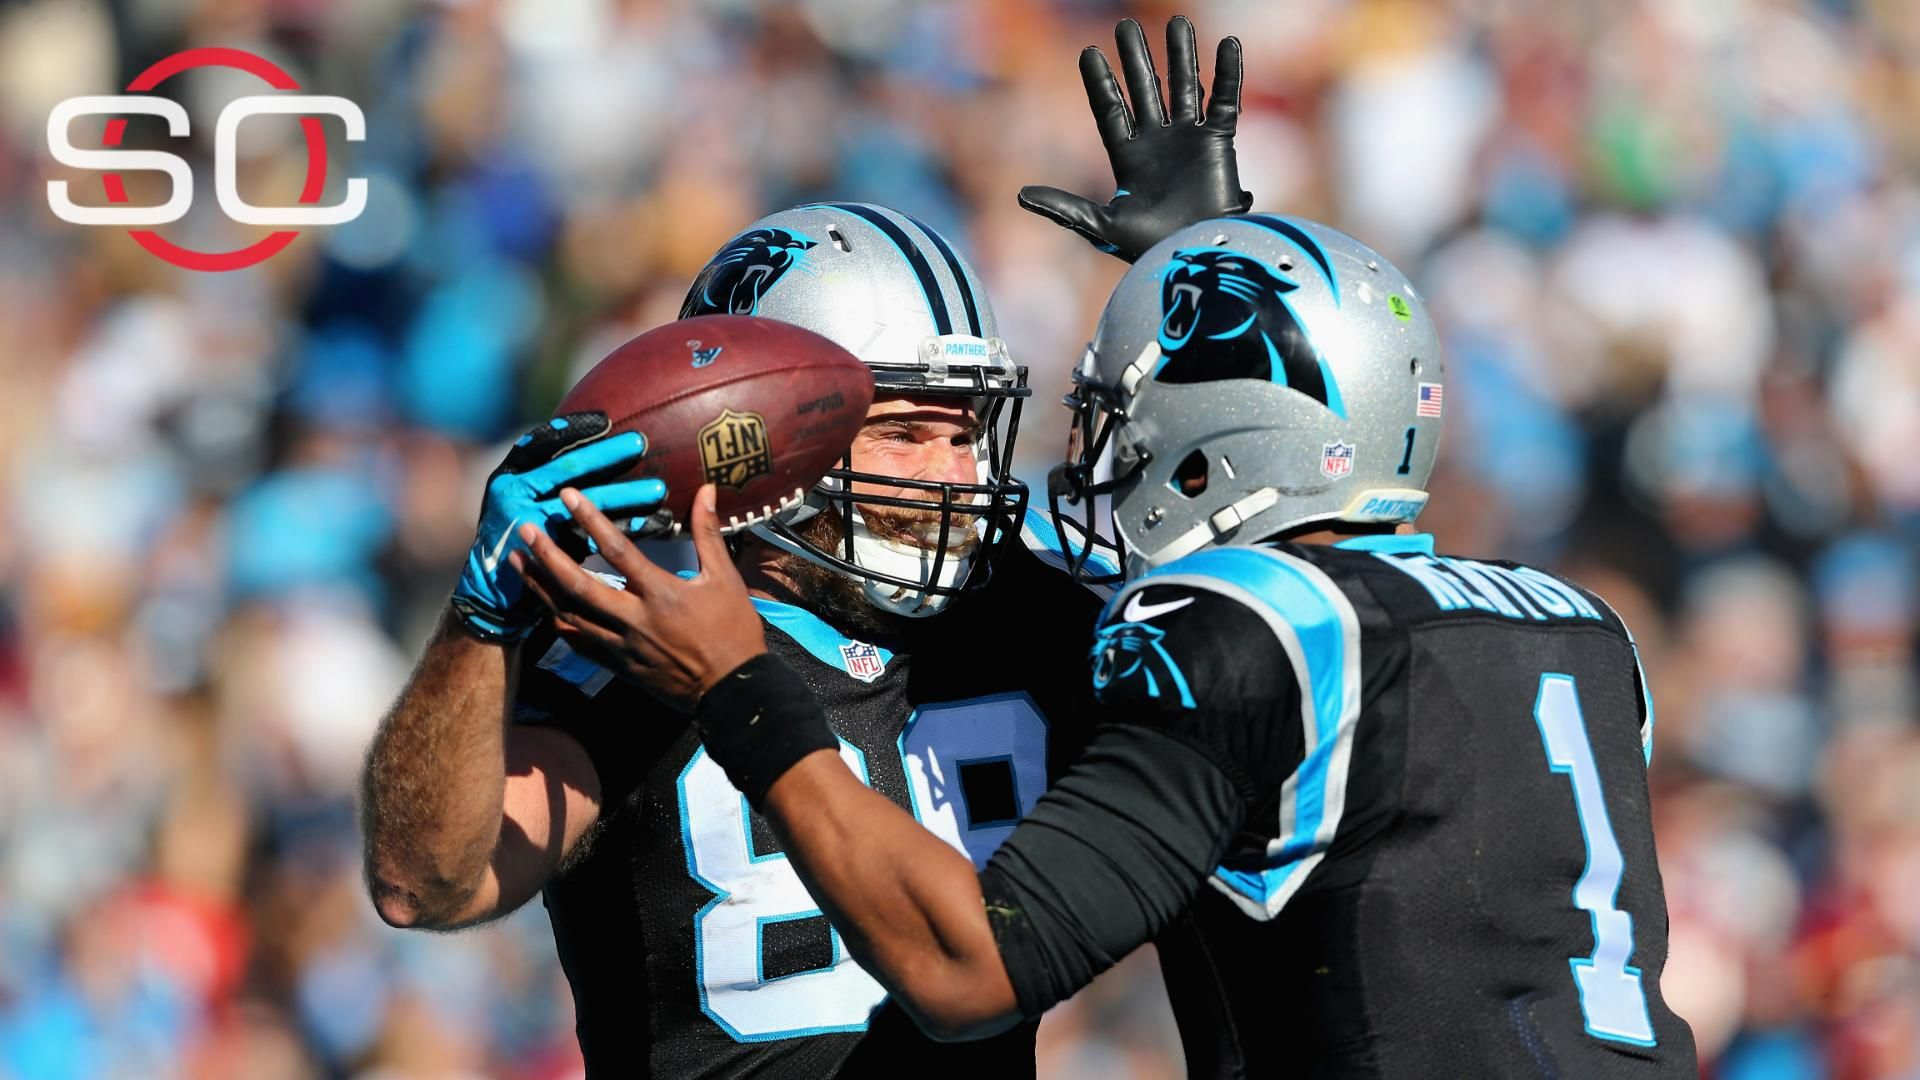 Unbeaten Panthers place 10 on Pro Bowl roster